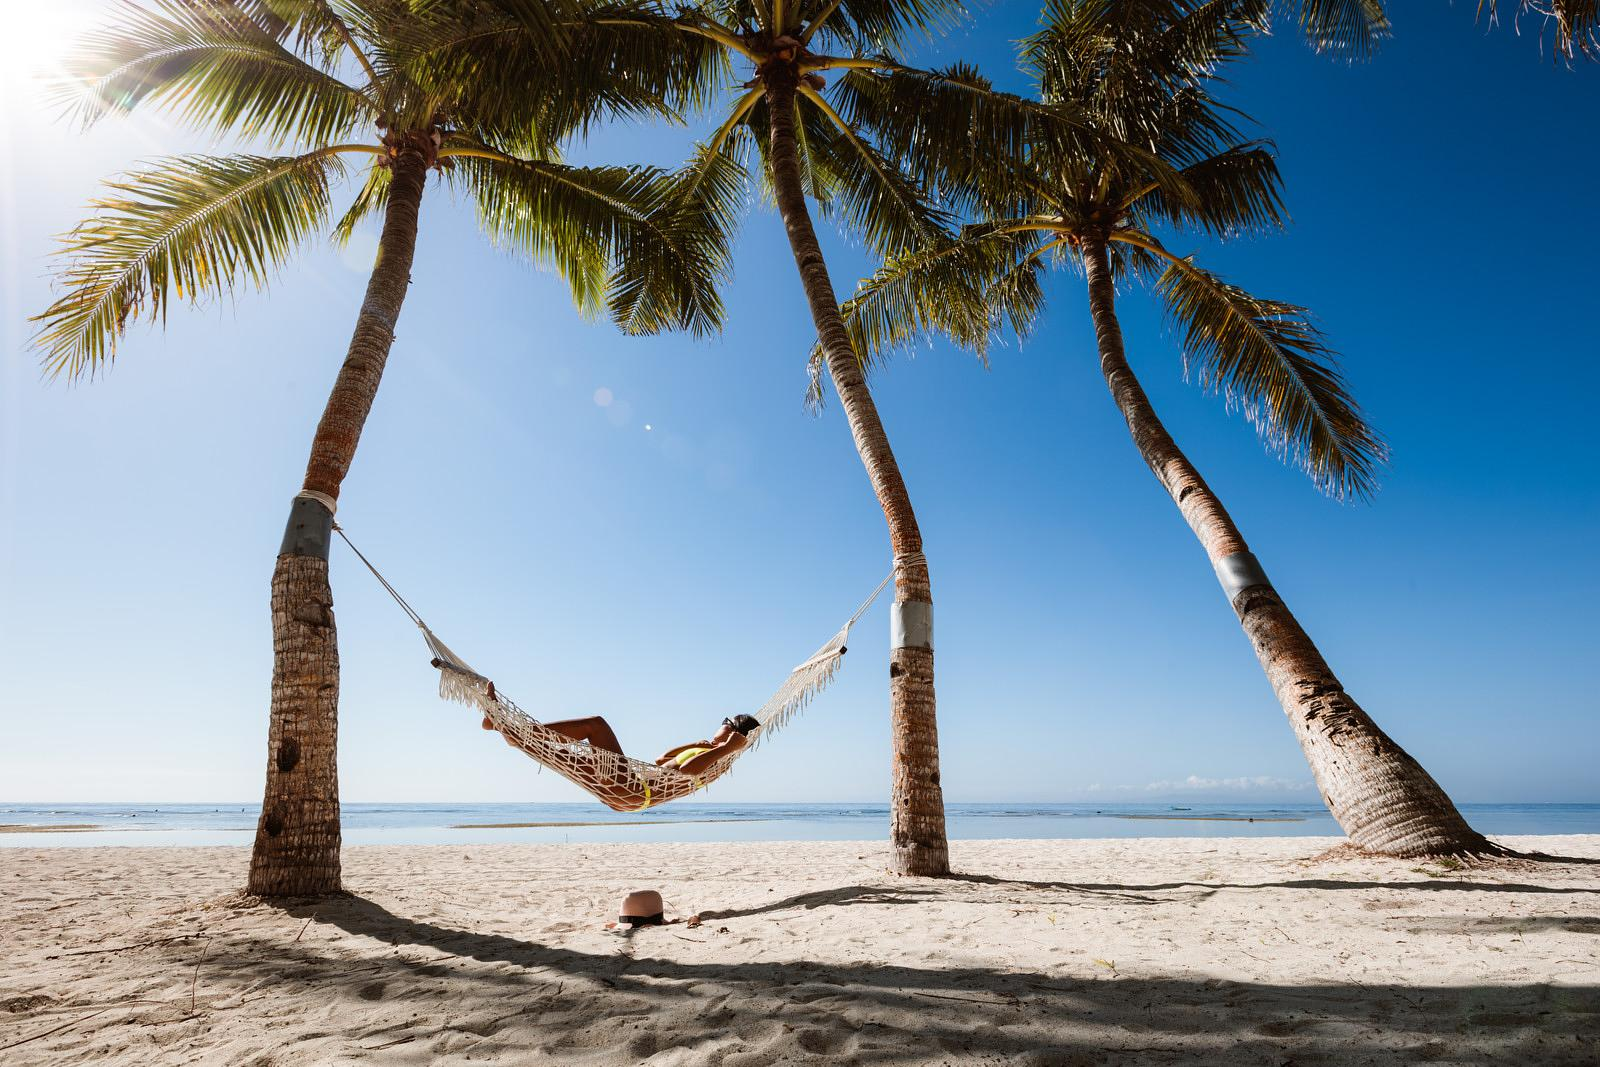 Woman relaxing in a hammock, Panglao, Bohol, Philippines